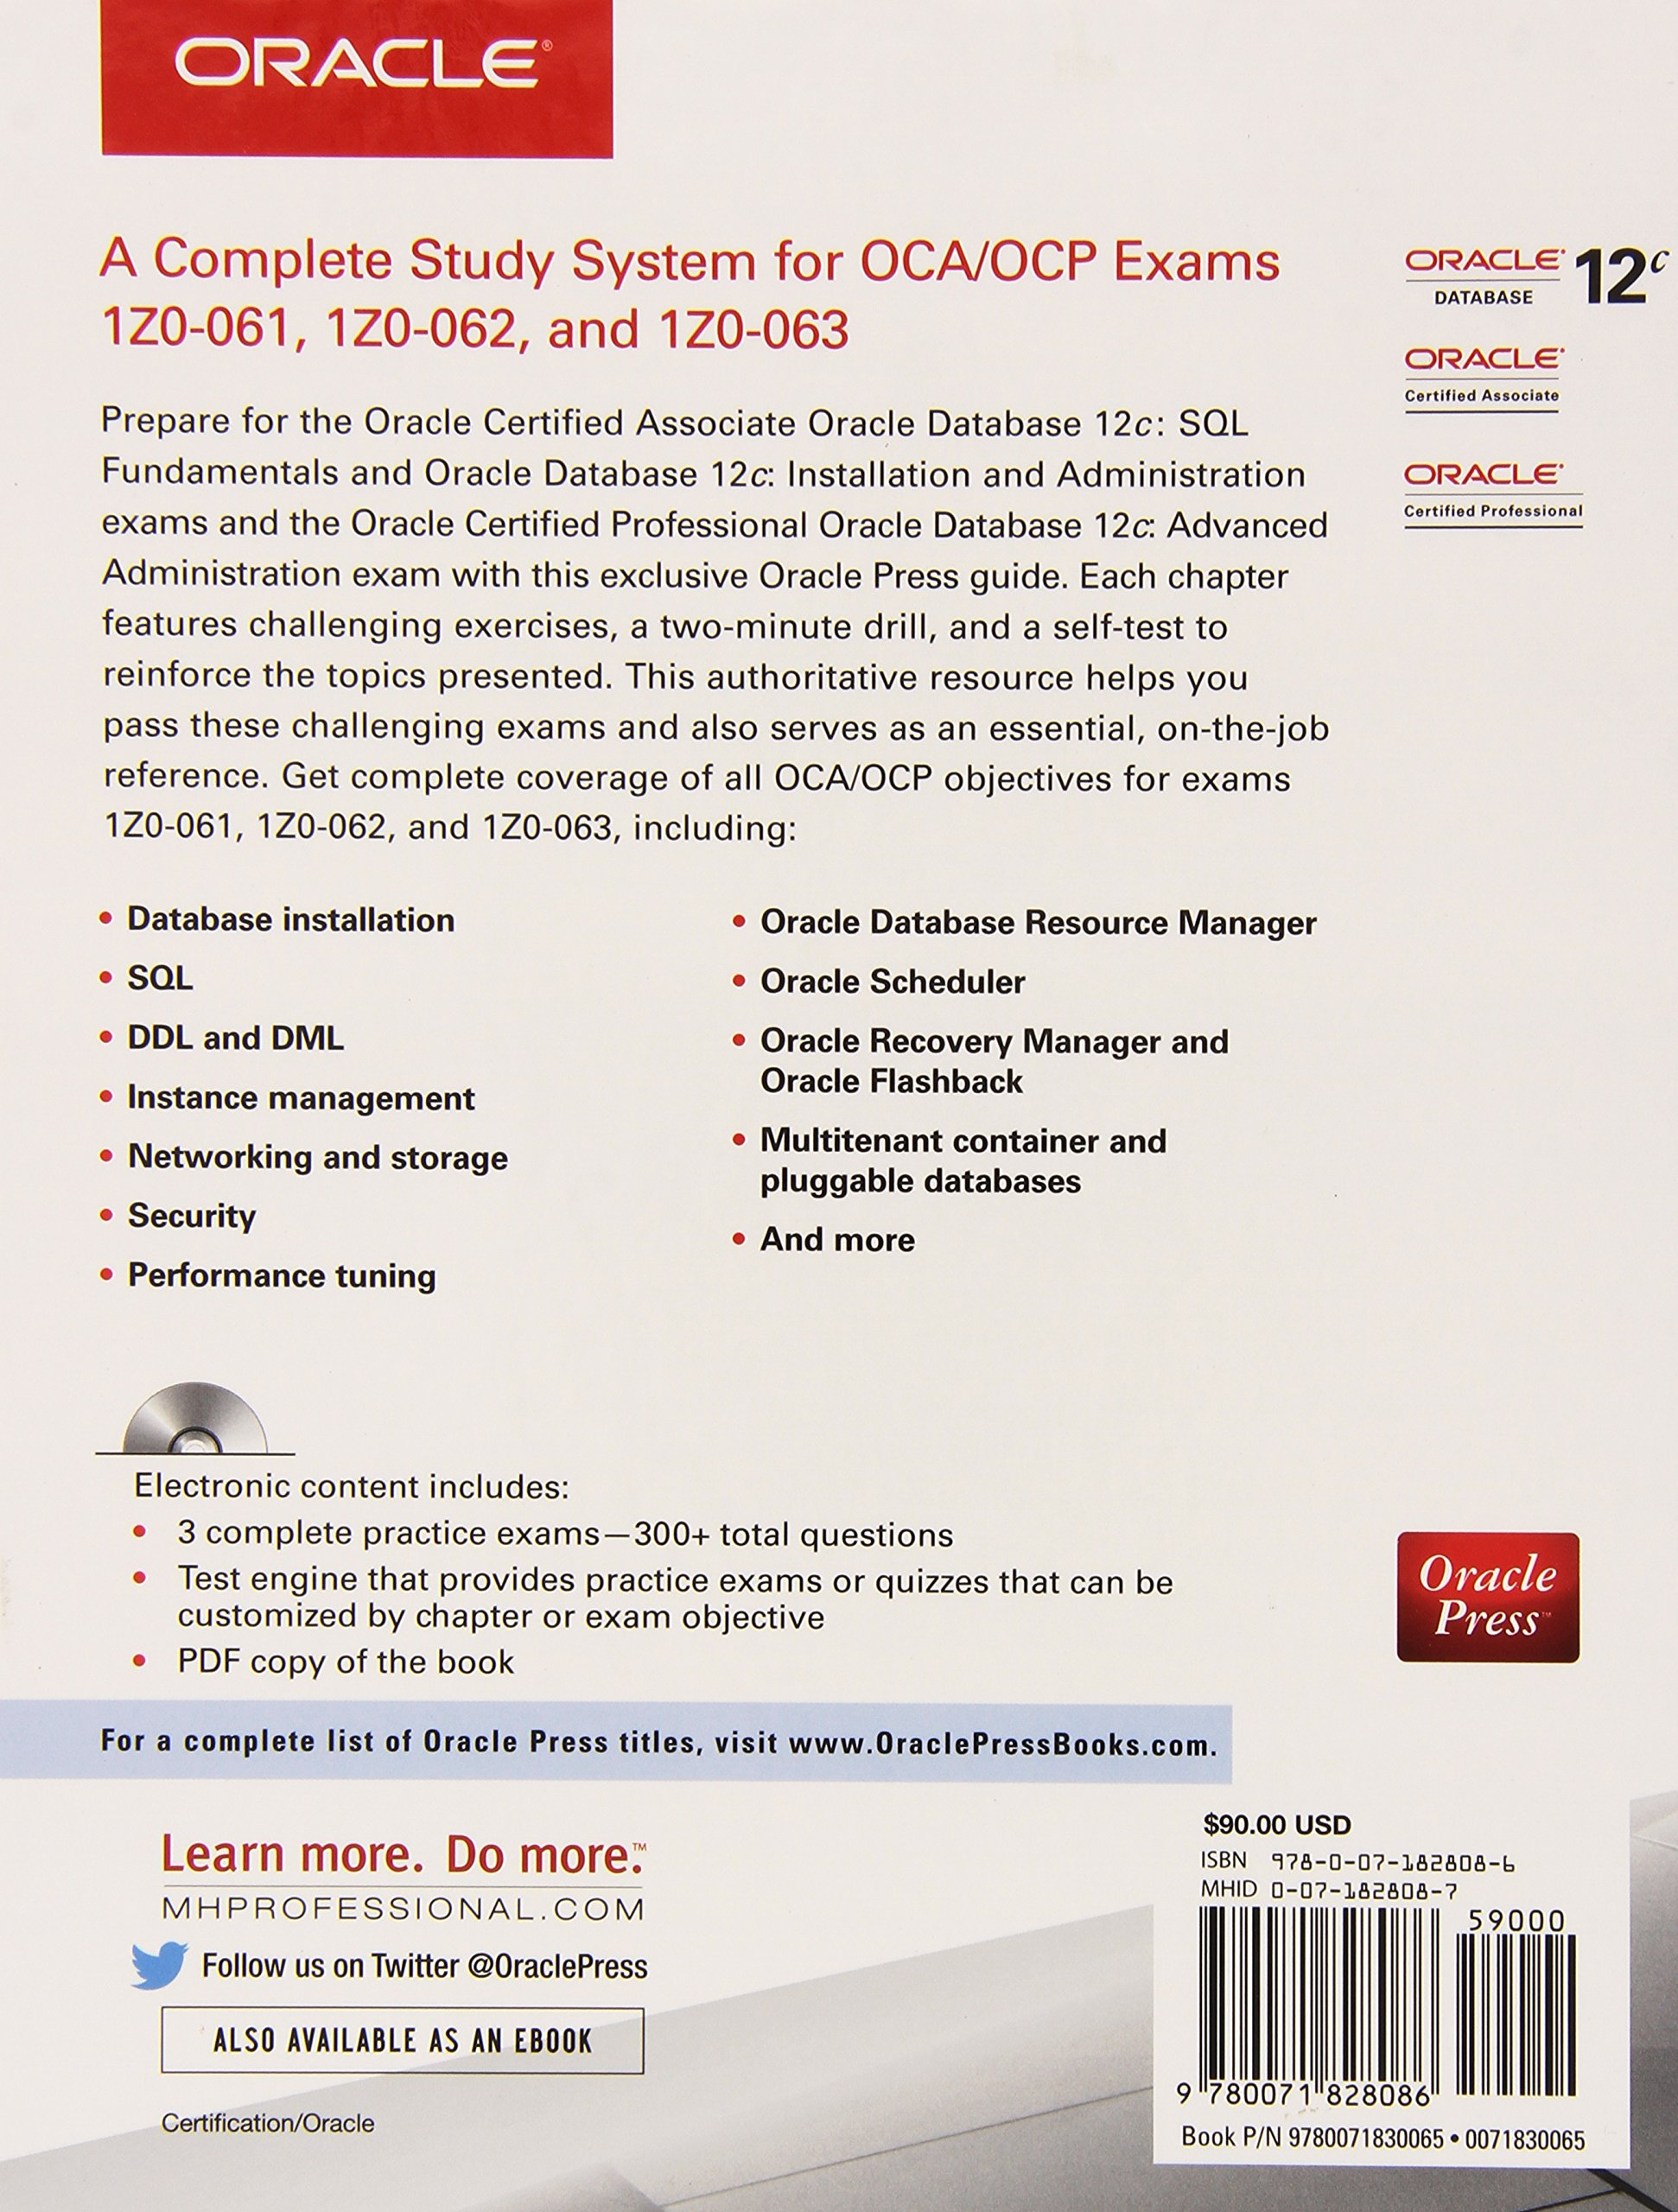 All In One Study Guide For 12c Ocaocp Exams 1z0 061 1z0 062